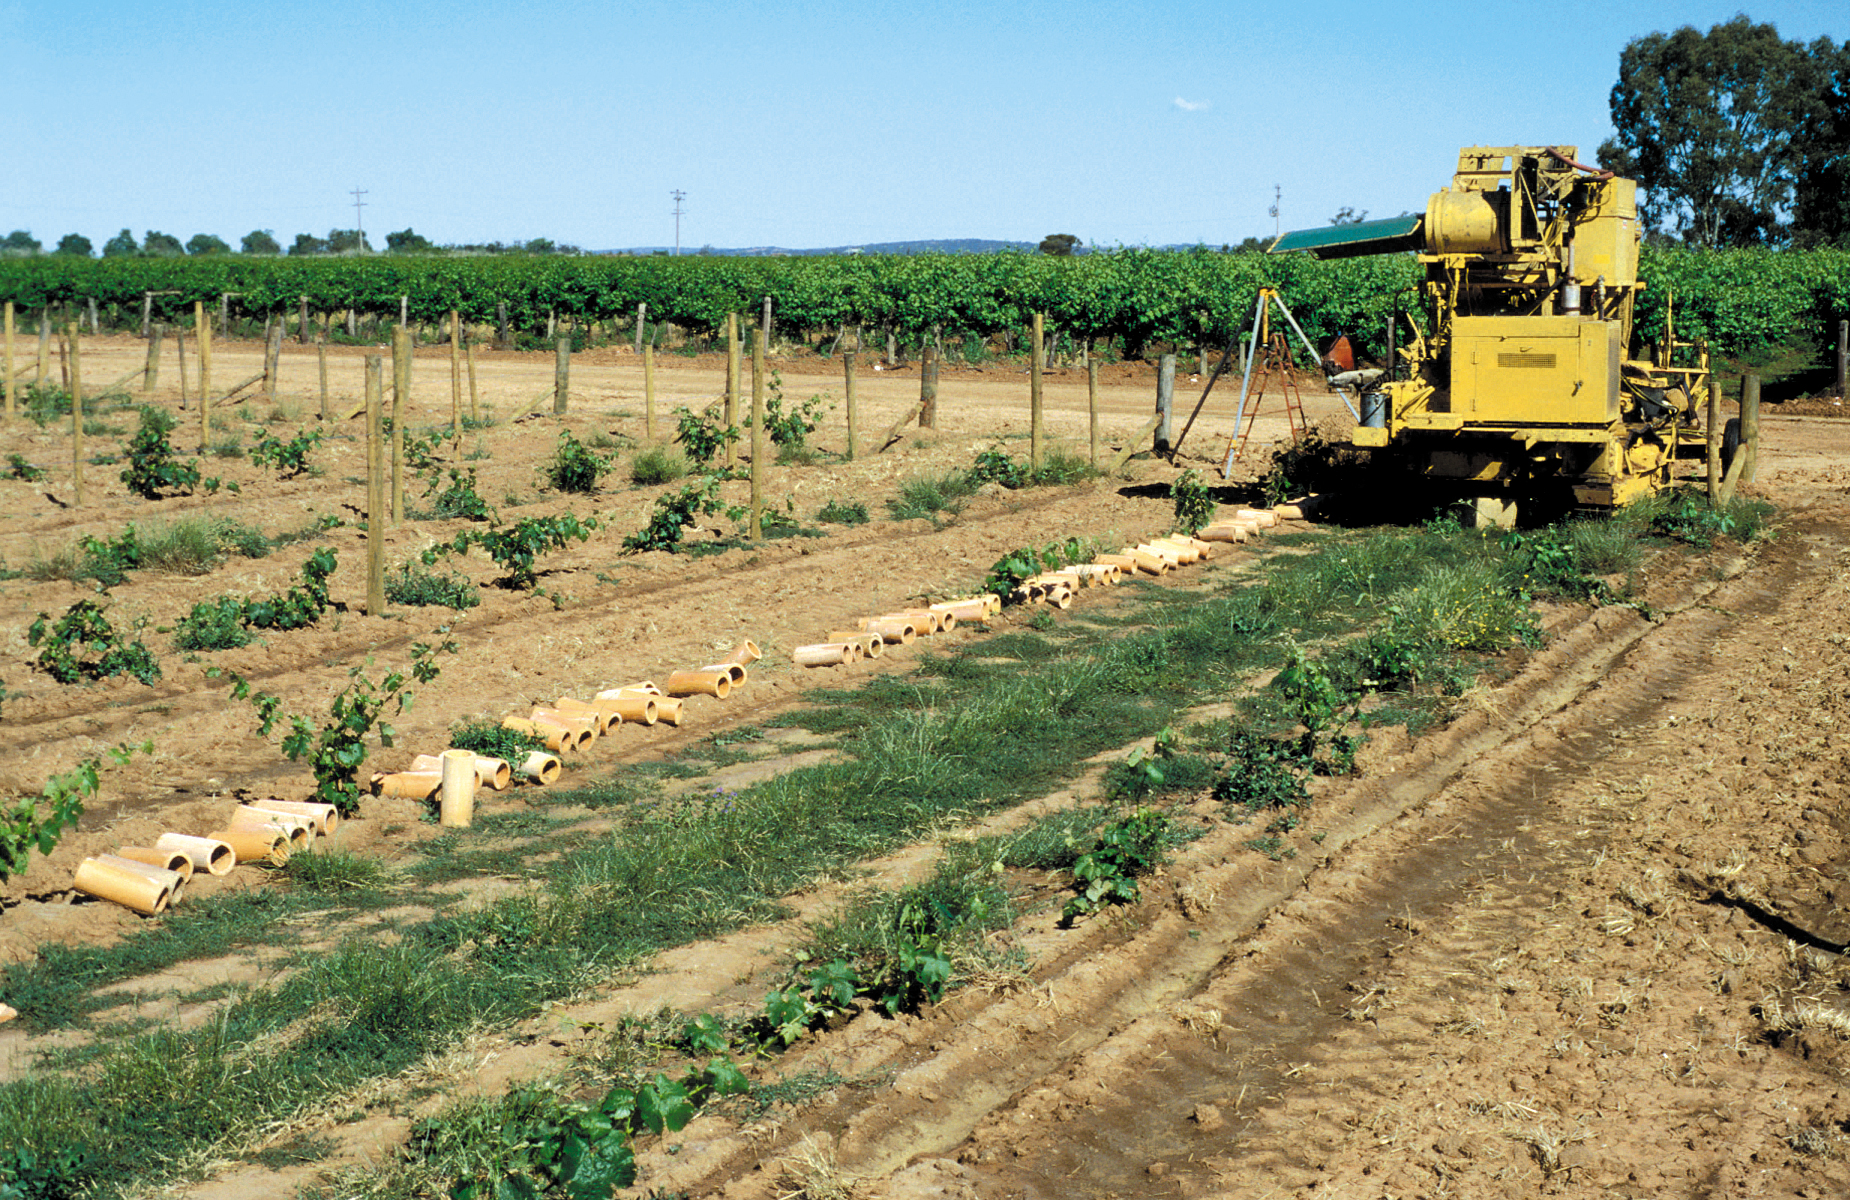 file csiro scienceimage 4474 tile drainage installation machine on farm in griffith nsw machine is installing clay tile drainage pipes in area planted with young grapevines mature vines in background jpg wikimedia commons